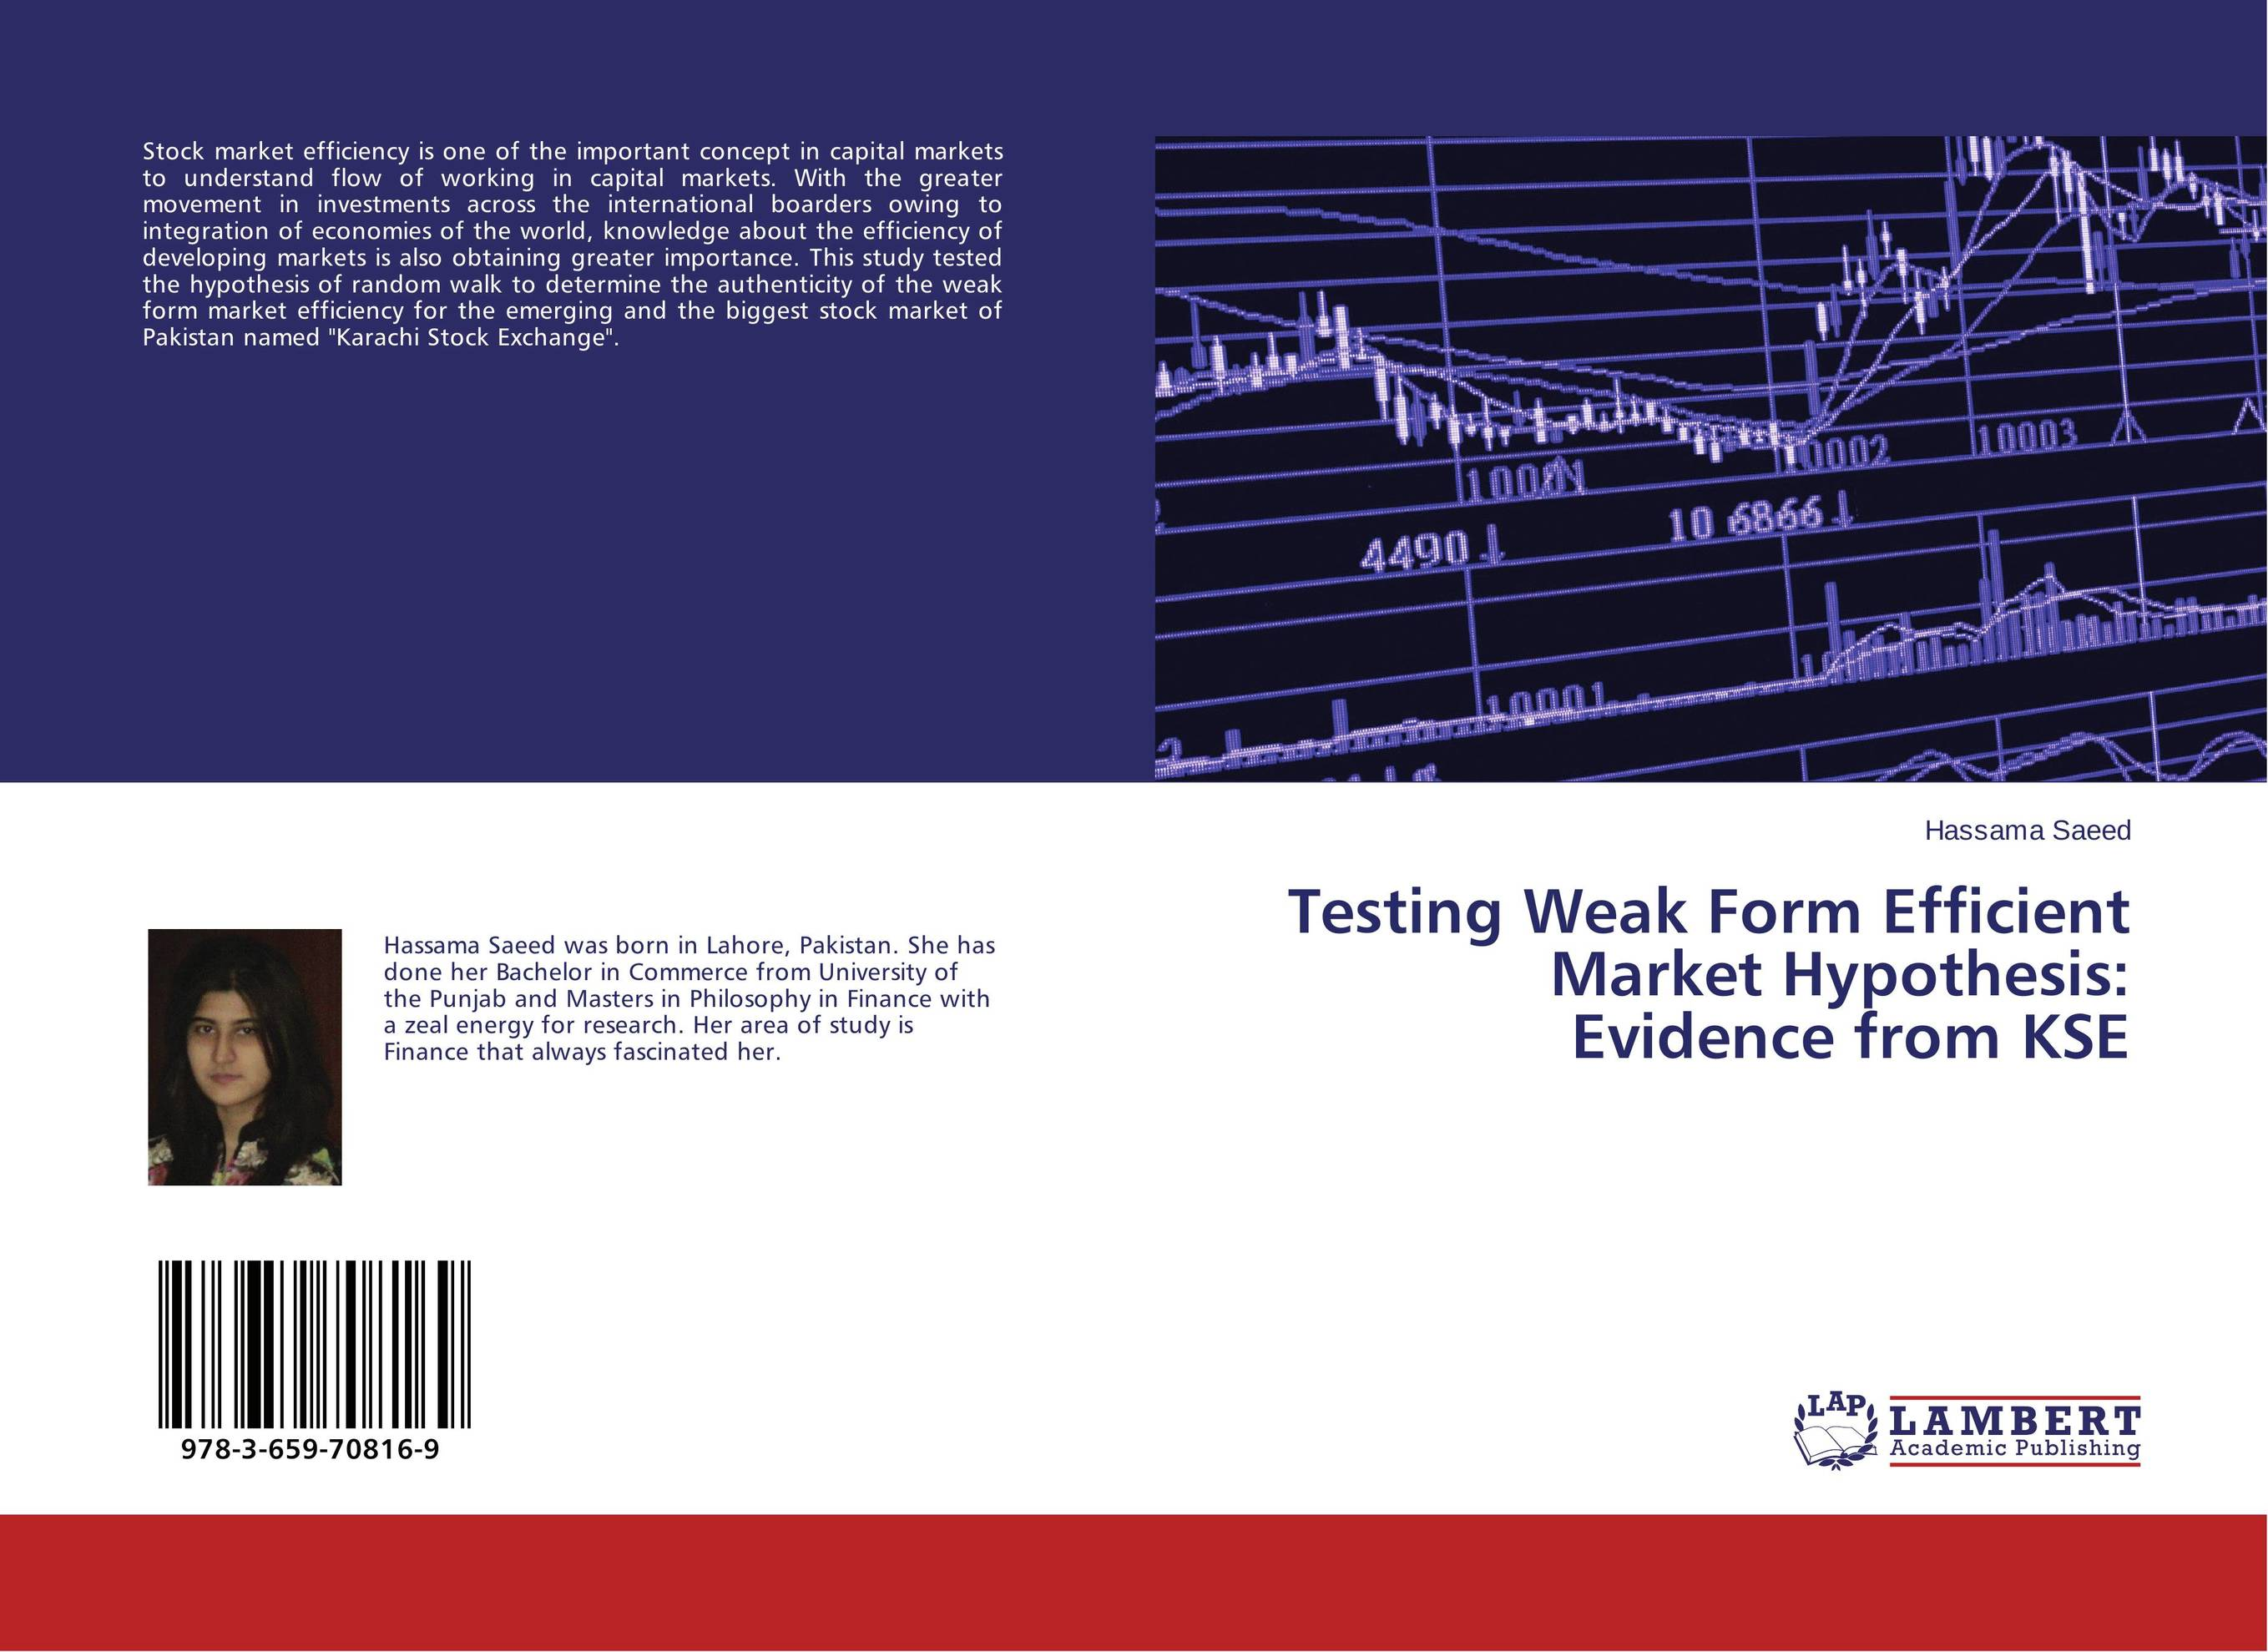 the weak form efficiency of the gcc The purpose of the paper is to test the weak-form market efficiency in saudi arabia's stock market, tadawul, which is expected to follow a random walk all shar.